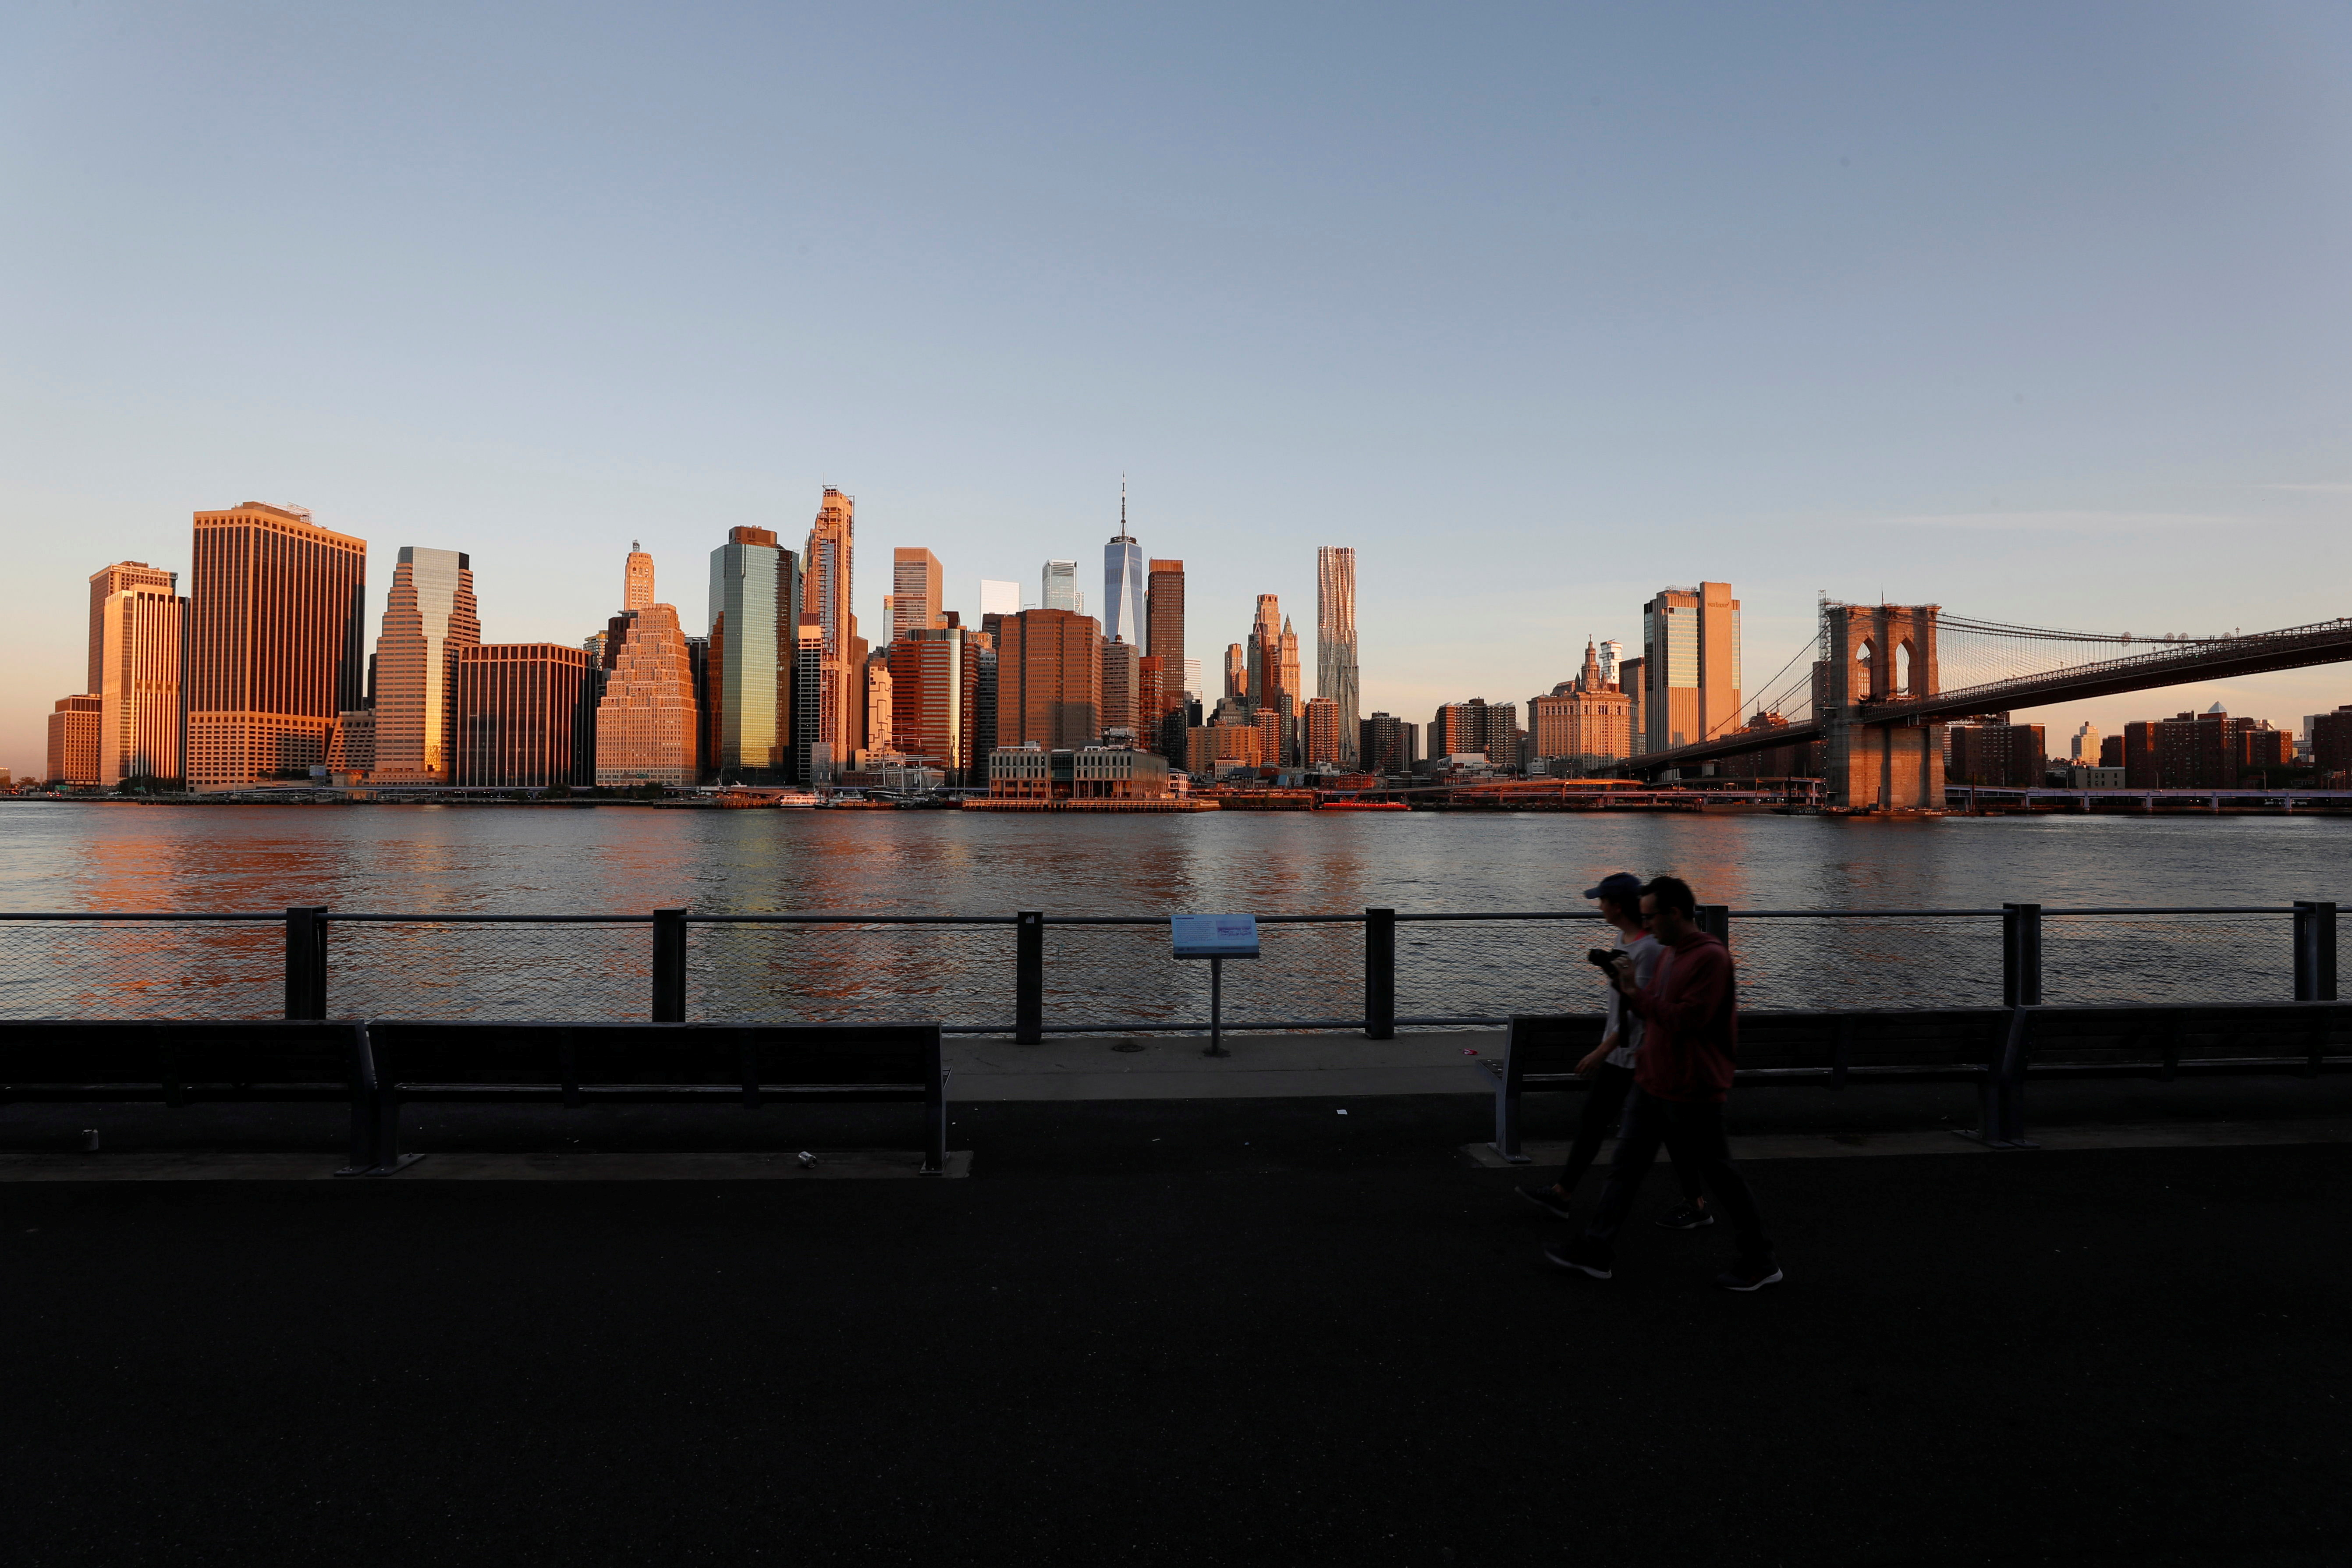 People walk as the New York skyline and the Brooklyn Bridge are seen on the 20th anniversary of the September 11, 2001 attacks in New York City, New York, U.S., September 11, 2021. REUTERS/Mario Anzuoni